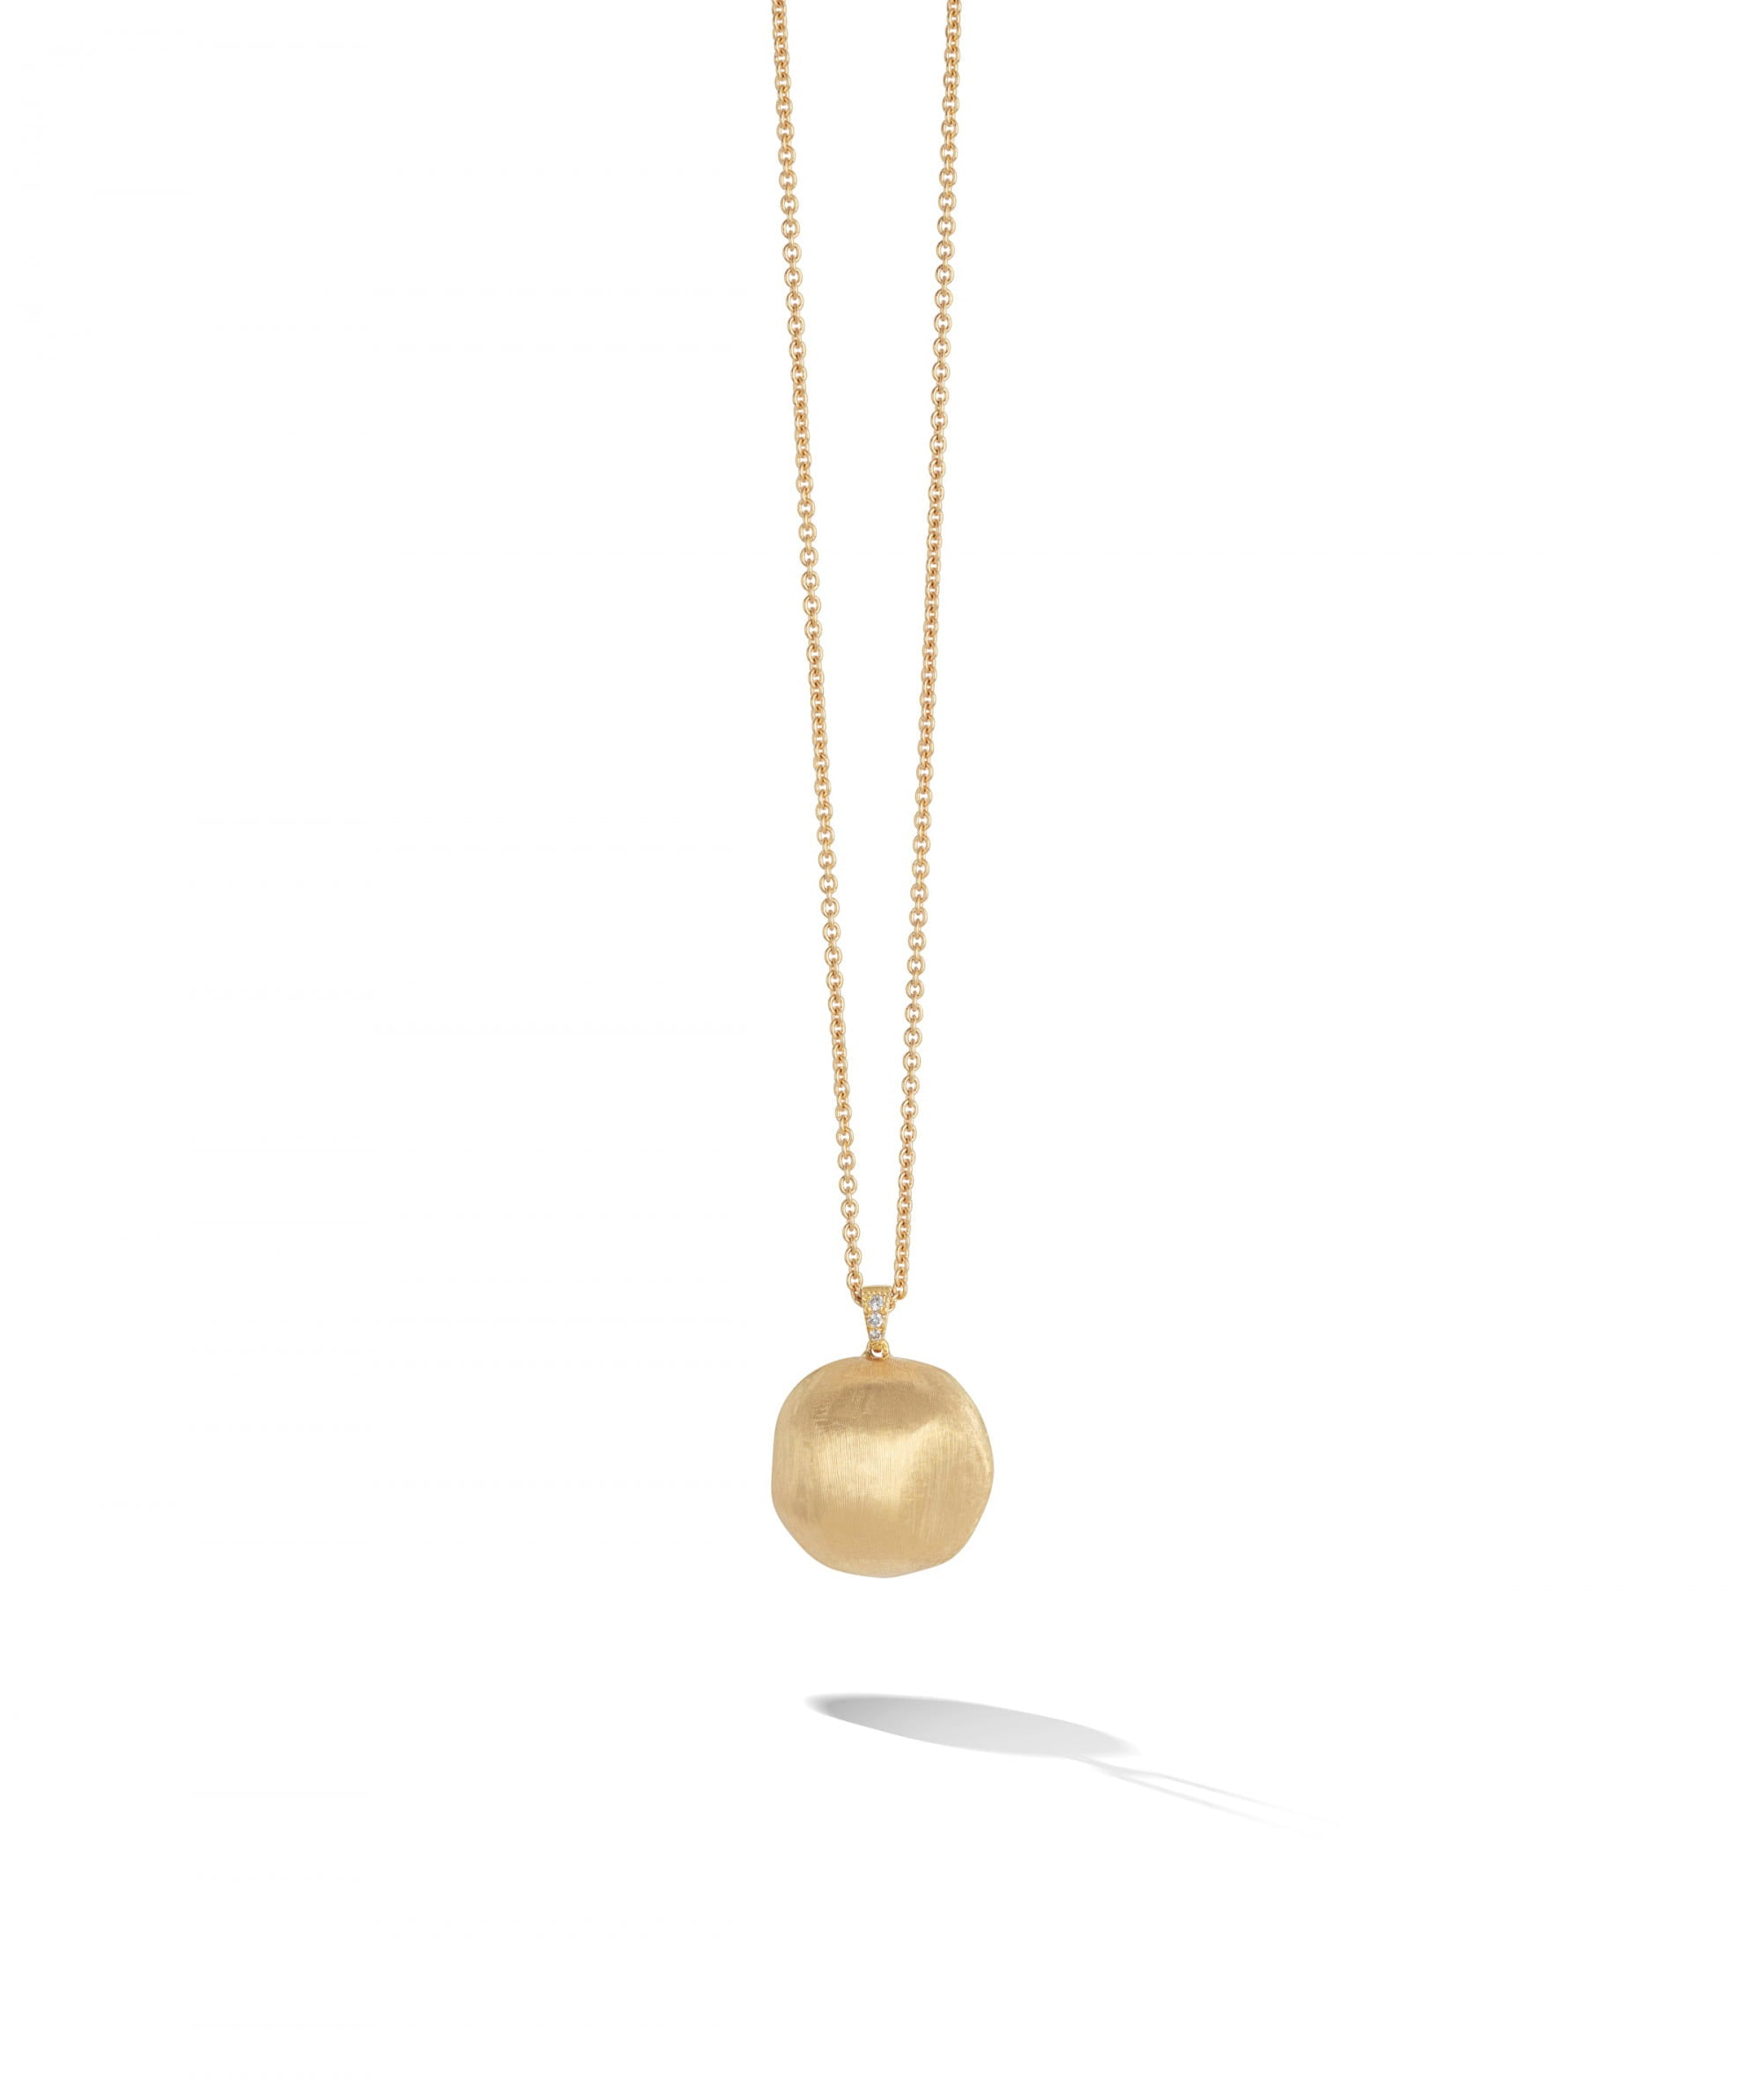 Africa Necklace in 18k Yellow Gold Spherical Pendant with Diamond-studded Bail Long - Orsini Jewellers NZ